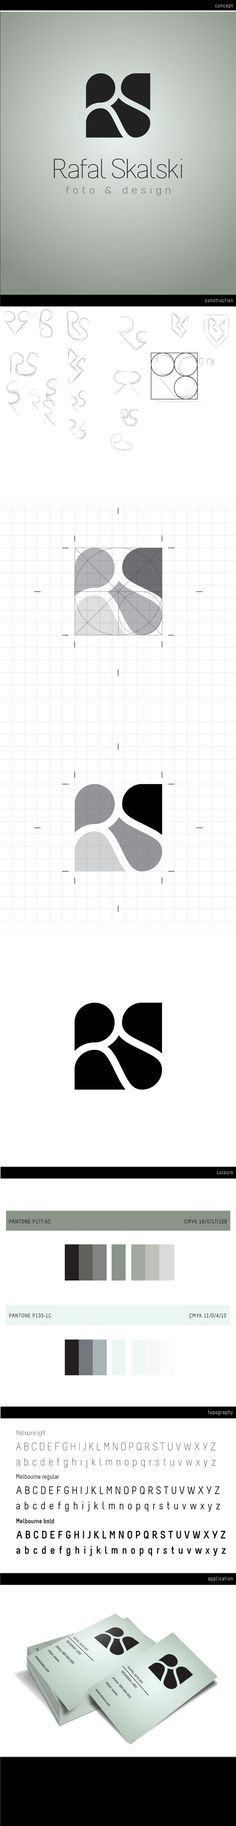 Personal Logo on Behance - would be neat to do something like this for my personal branding